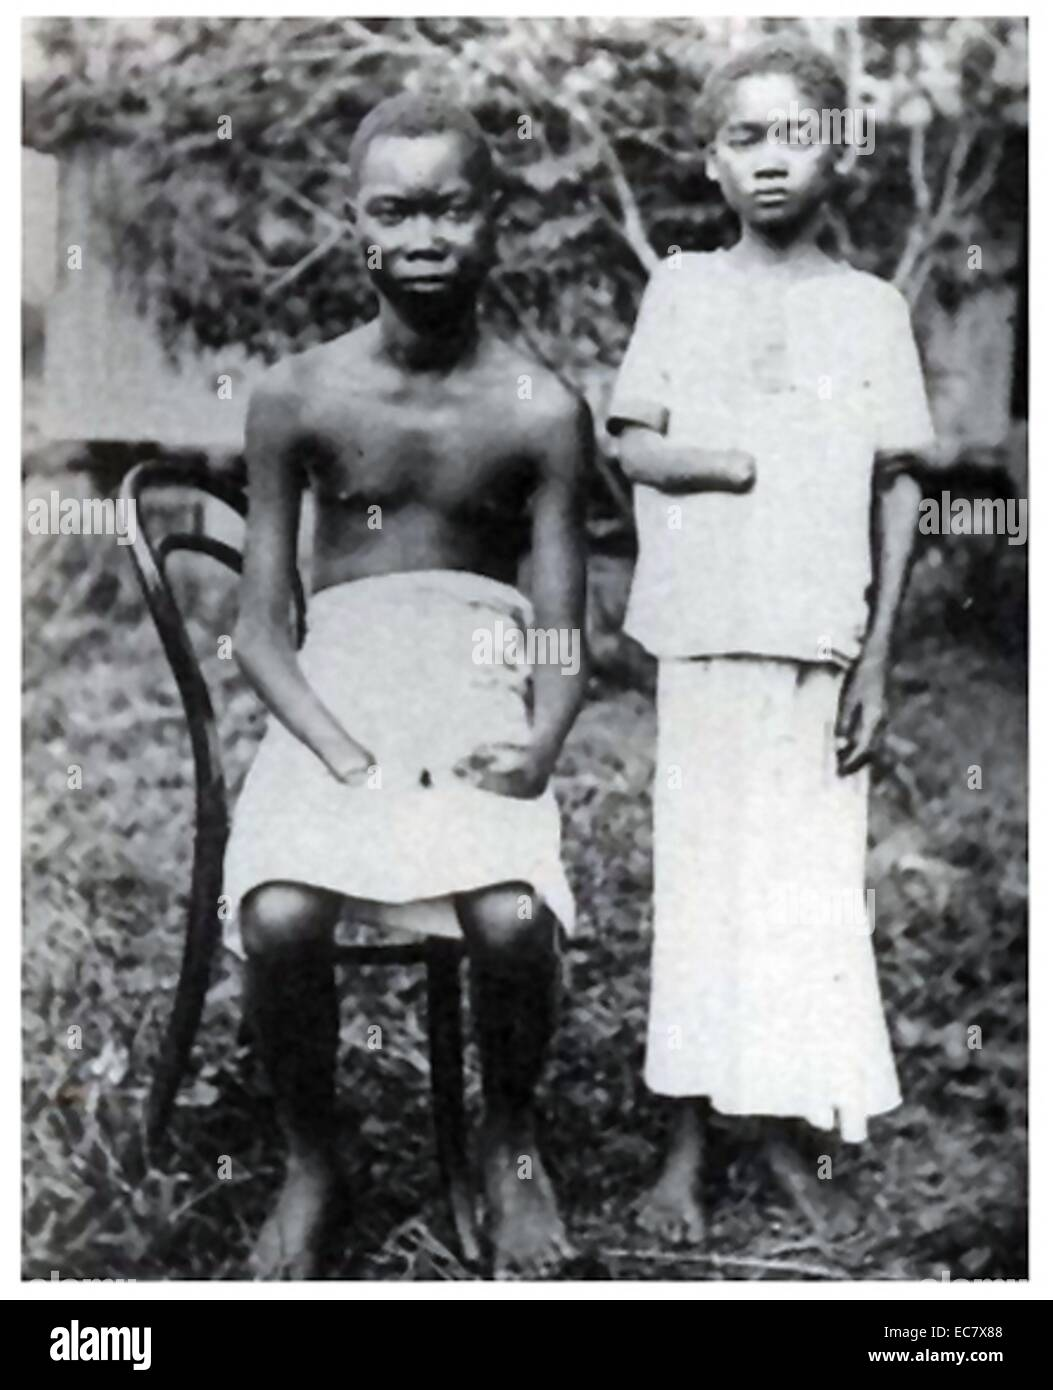 Amputation was frequently used to punish workers in the Congo Free State;   controlled by Leopold II of Belgium - Stock Image